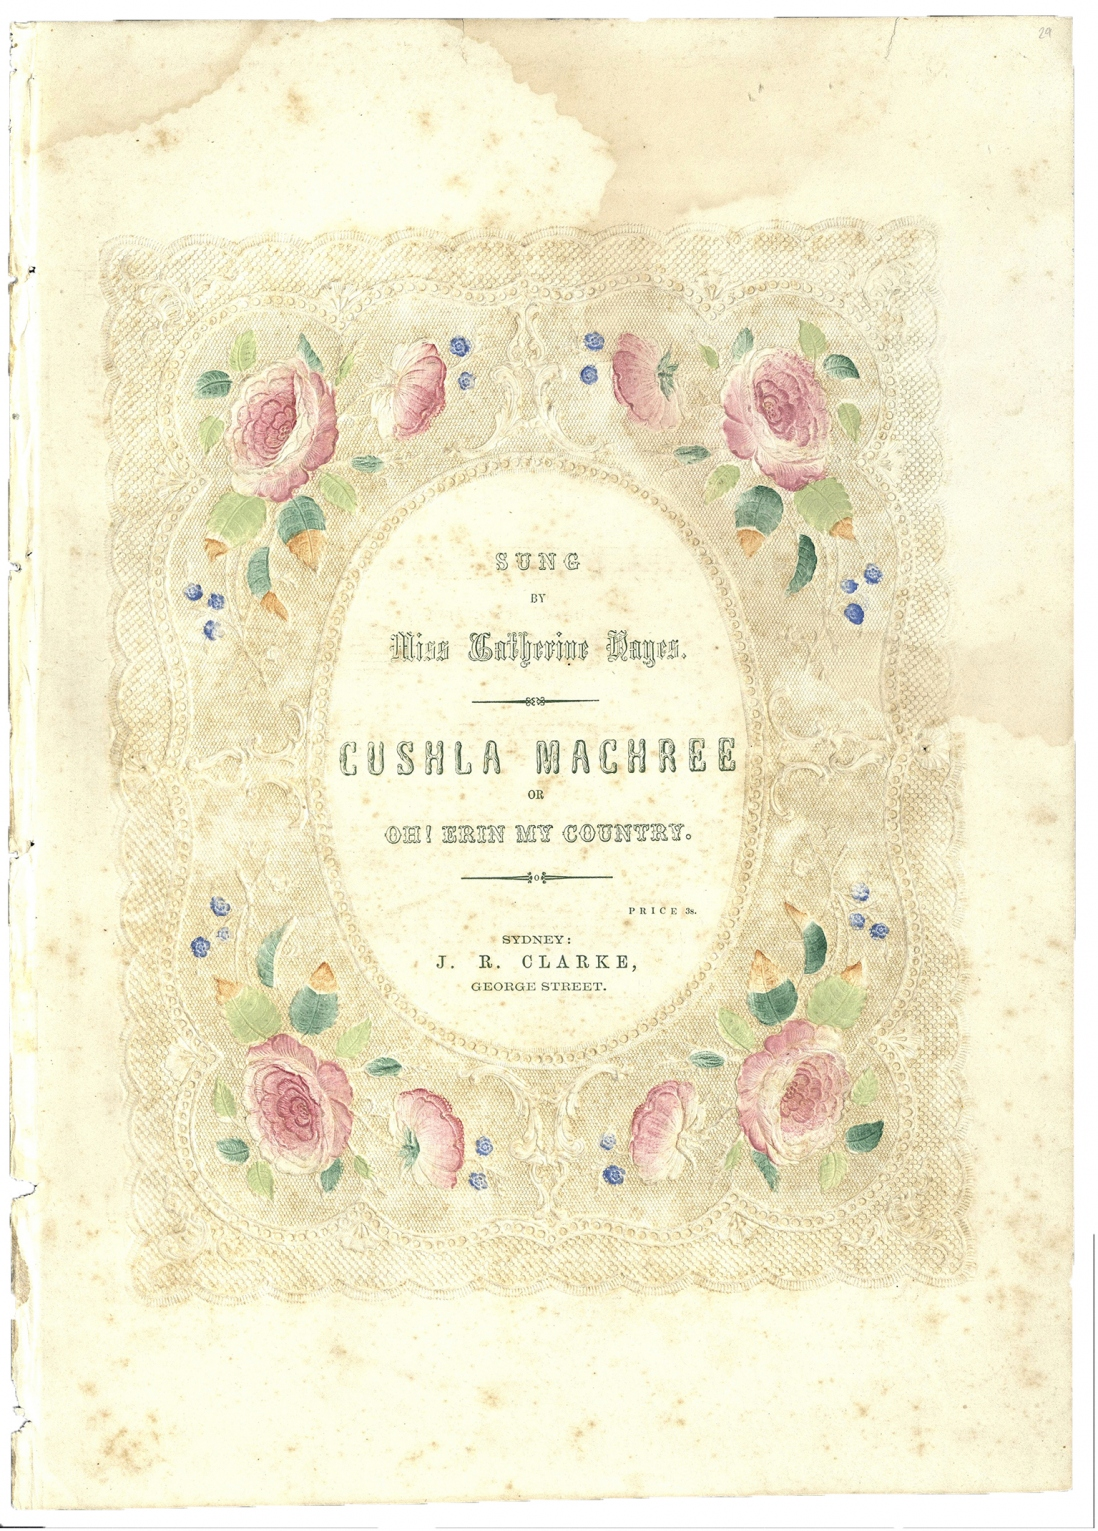 Cushla Machree sheet music